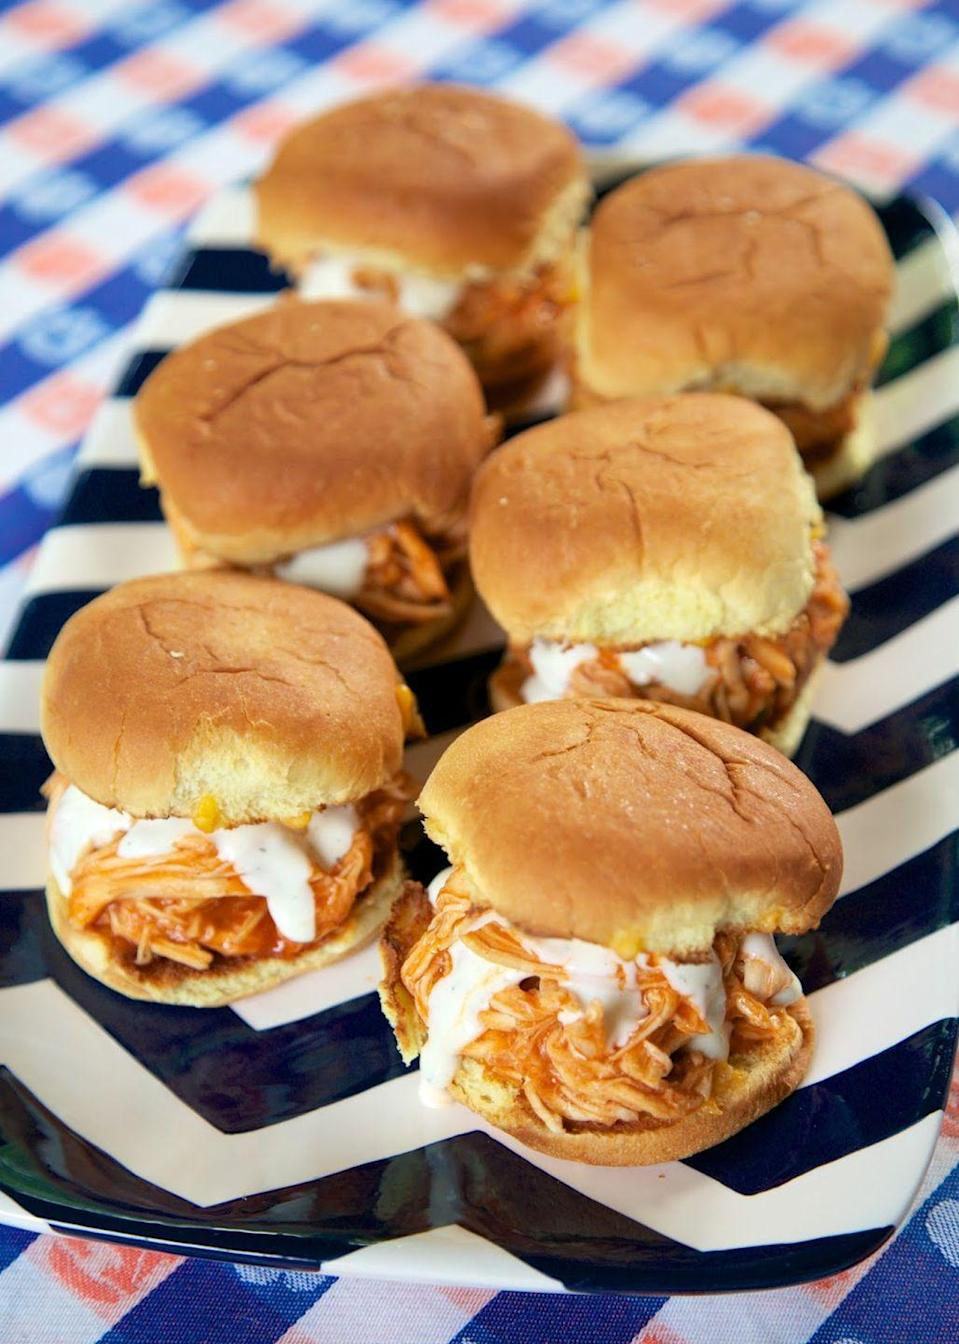 """<p>These zesty and creamy sliders can be made in your slow-cooker, and no one is going to argue with less work.</p><p>Get the recipe from <a href=""""http://www.plainchicken.com/2015/01/slow-cooker-buffalo-chicken-sliders.html"""" rel=""""nofollow noopener"""" target=""""_blank"""" data-ylk=""""slk:Plain Chicken"""" class=""""link rapid-noclick-resp"""">Plain Chicken</a>.</p>"""